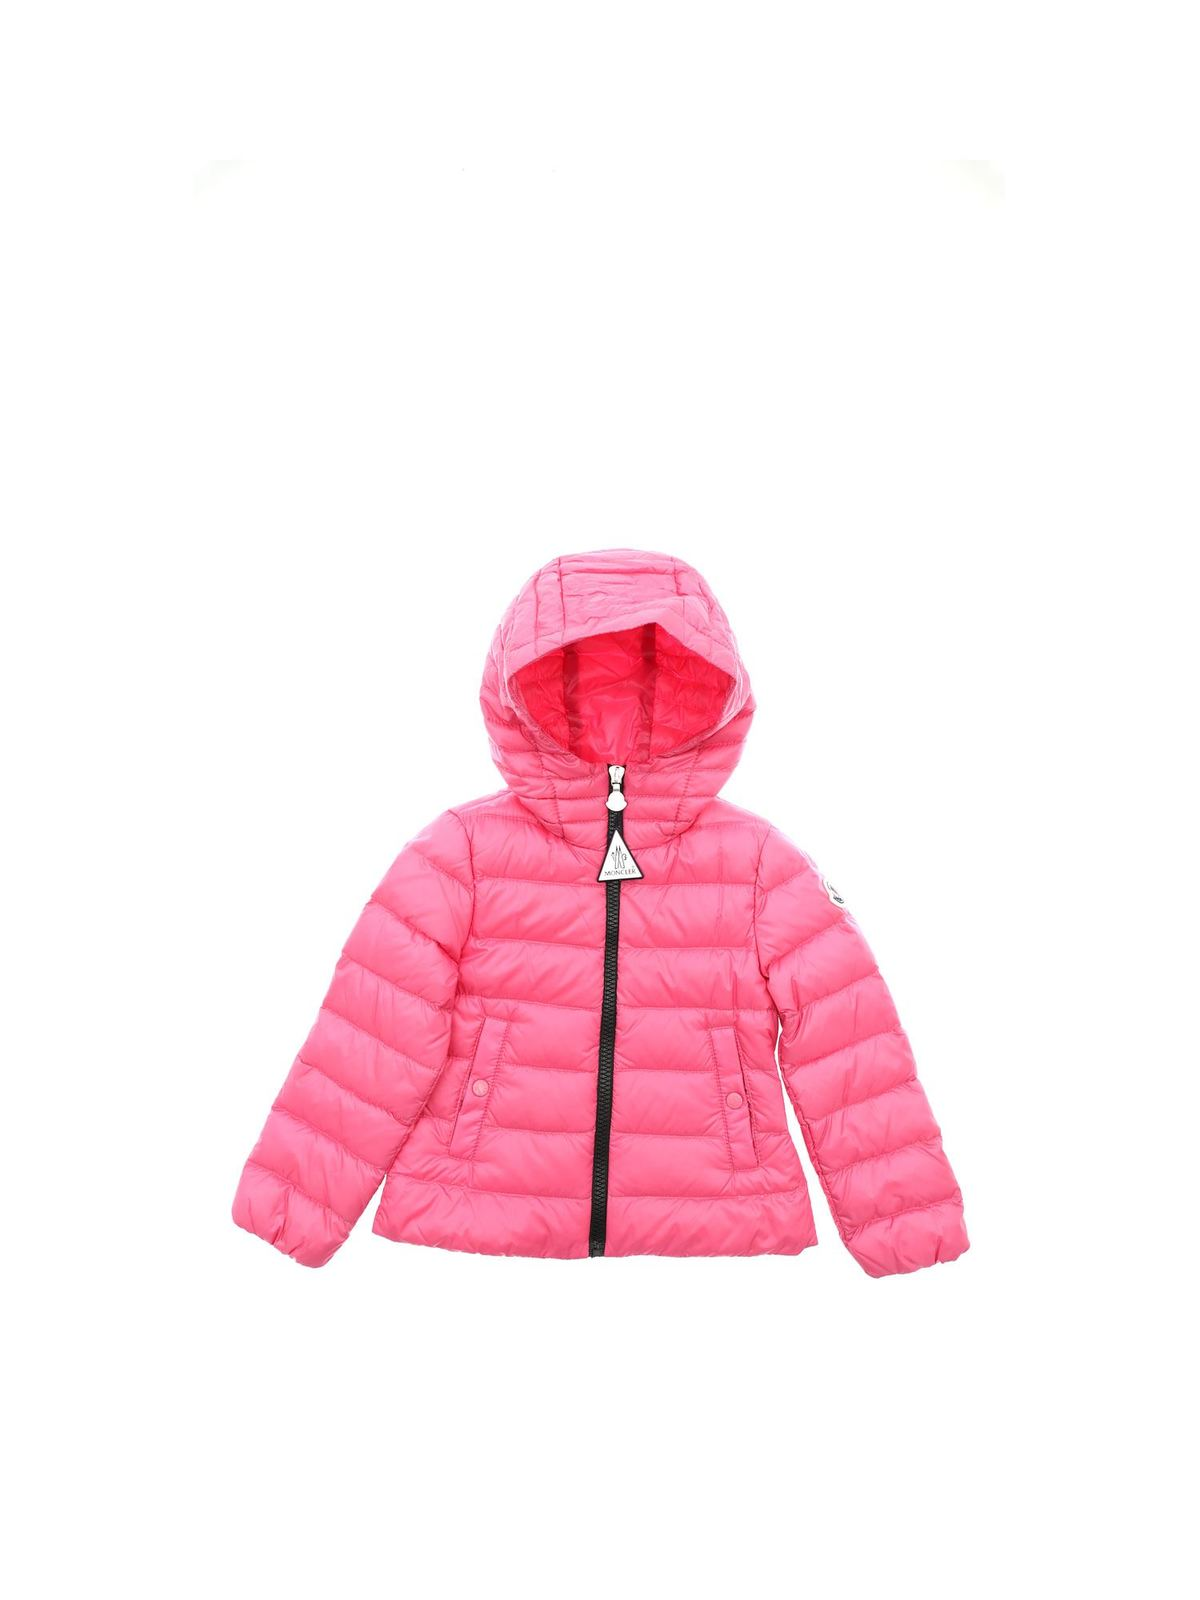 MONCLER JR GLYCINE DOWN JACKET IN PINK